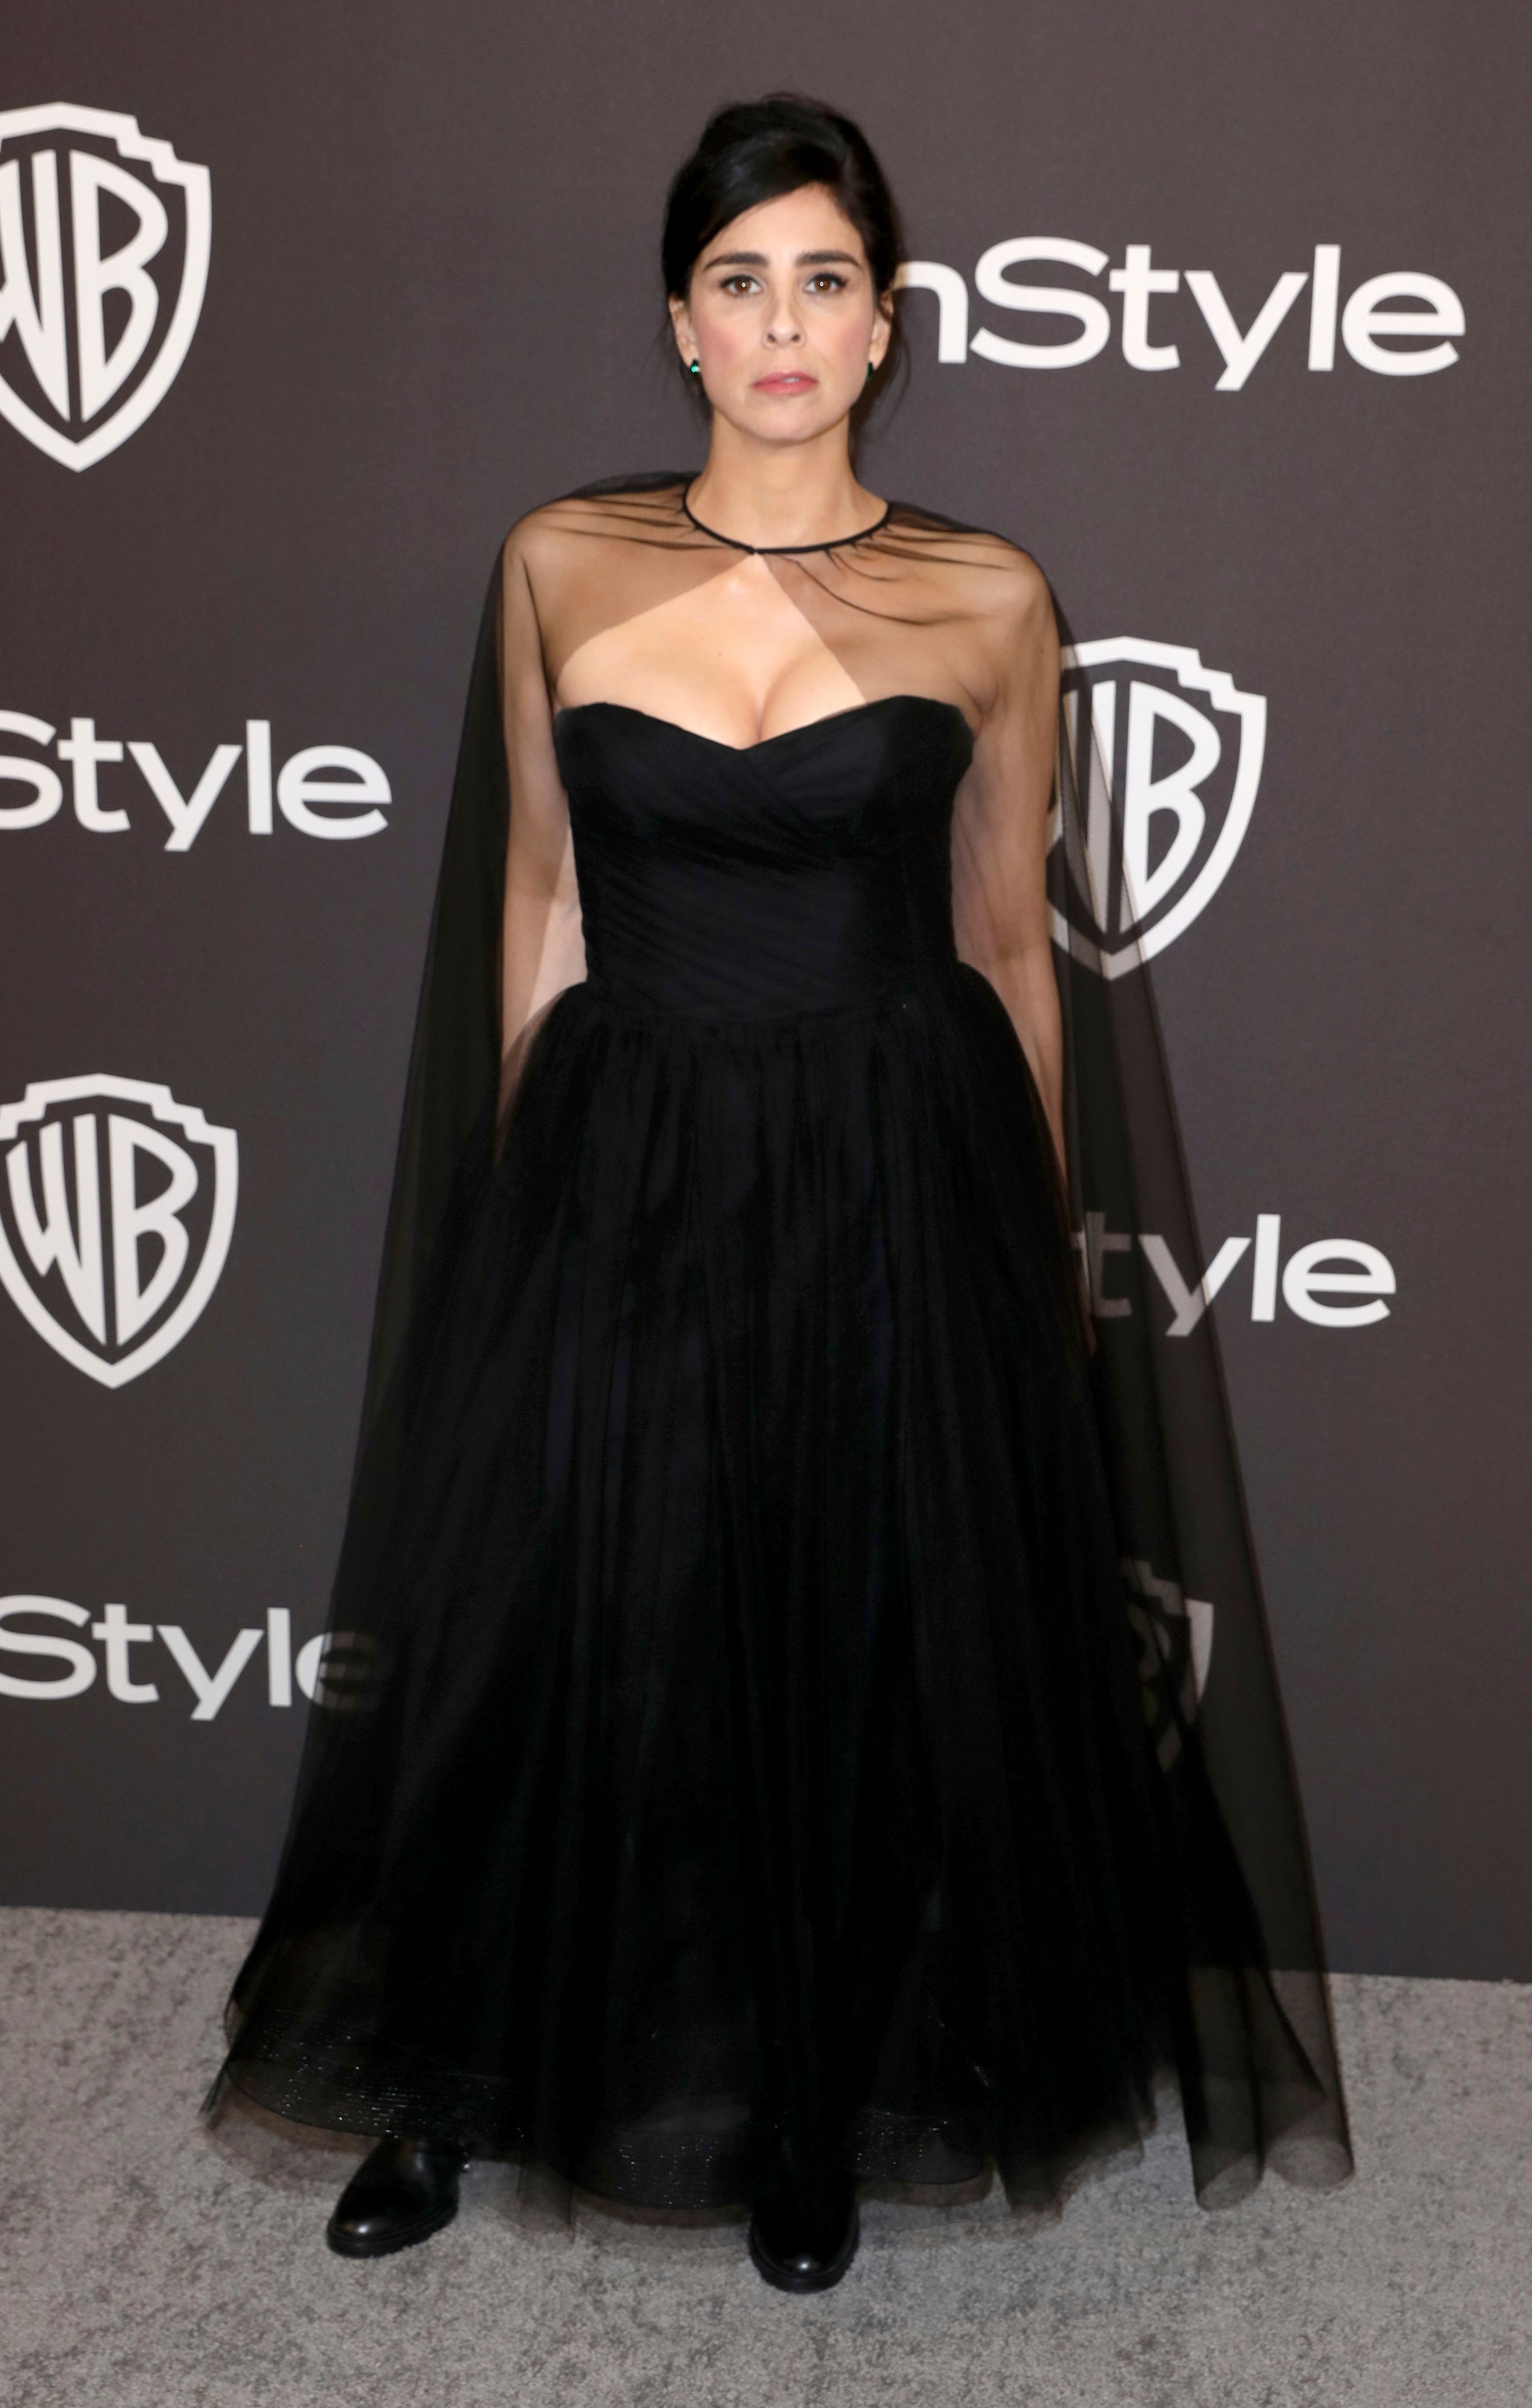 Sarah Silverman arrives at the InStyle and Warner Bros. Golden Globes afterparty at the Beverly Hilton Hotel on Sunday, Jan. 6, 2019, in Beverly Hills, Calif. (Photo by Matt Sayles/Invision/AP)